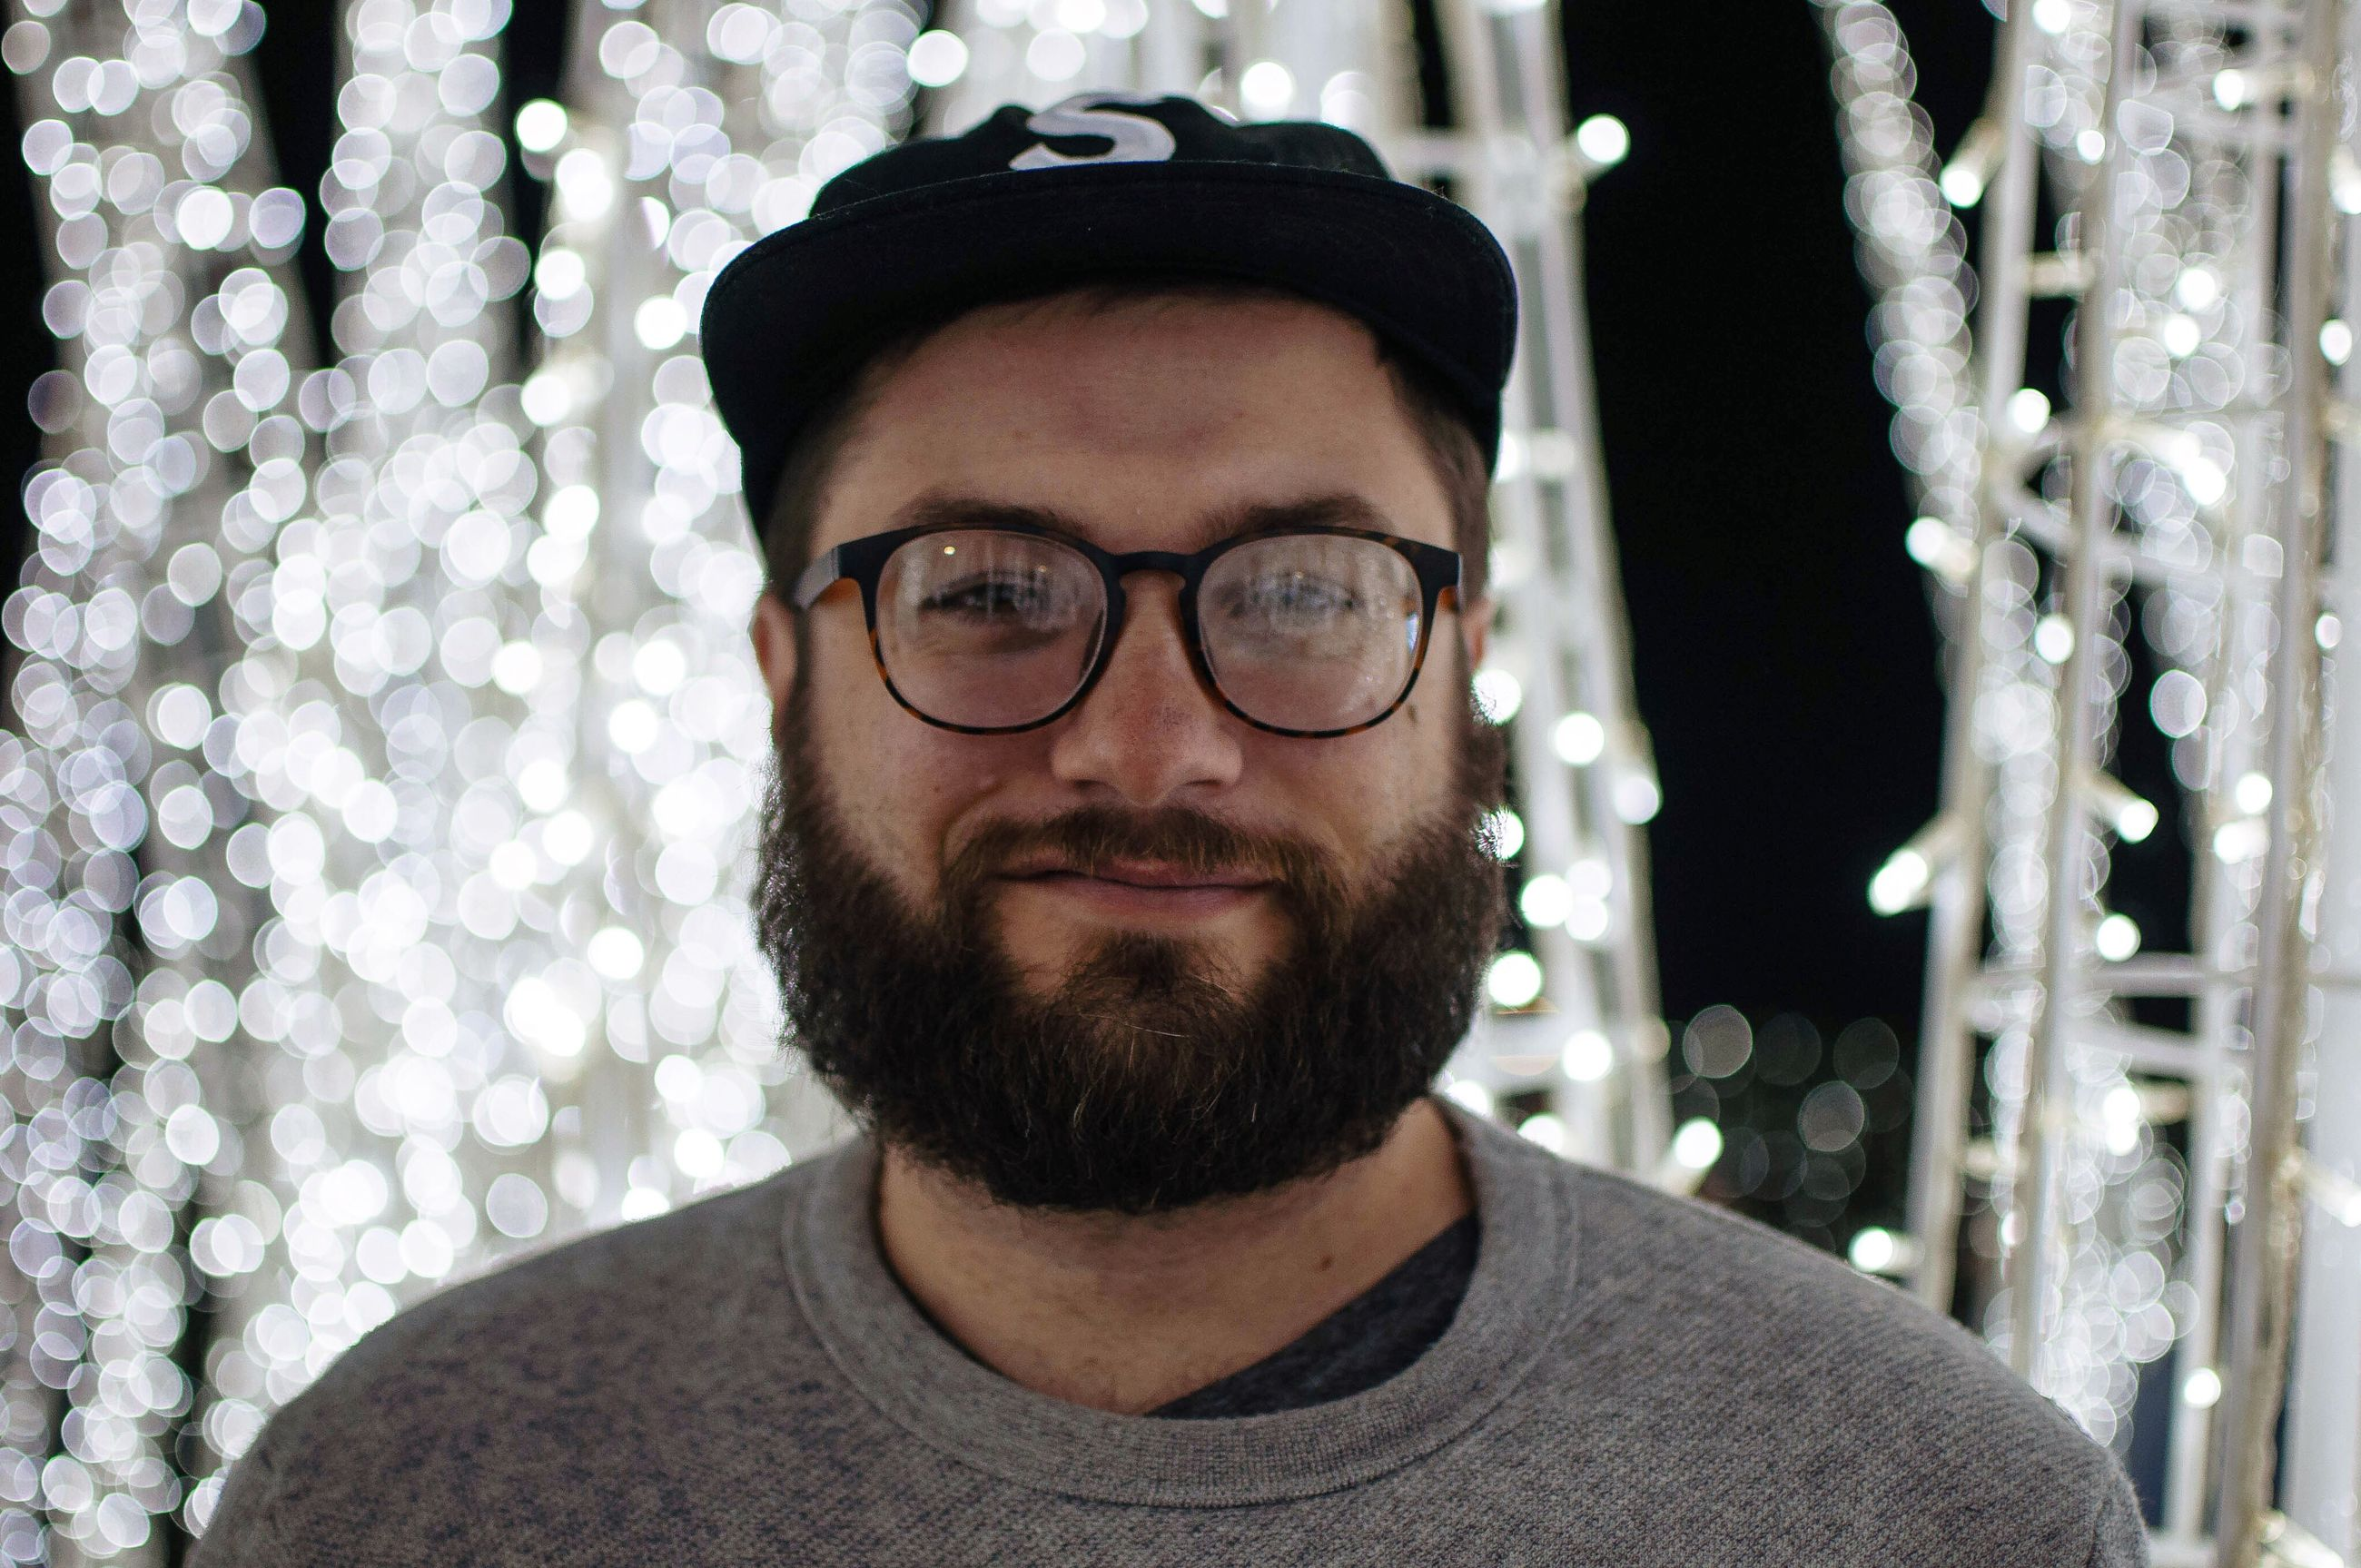 eyeglasses, glasses, beard, real people, looking at camera, young men, young adult, portrait, lifestyles, one person, indoors, day, close-up, people